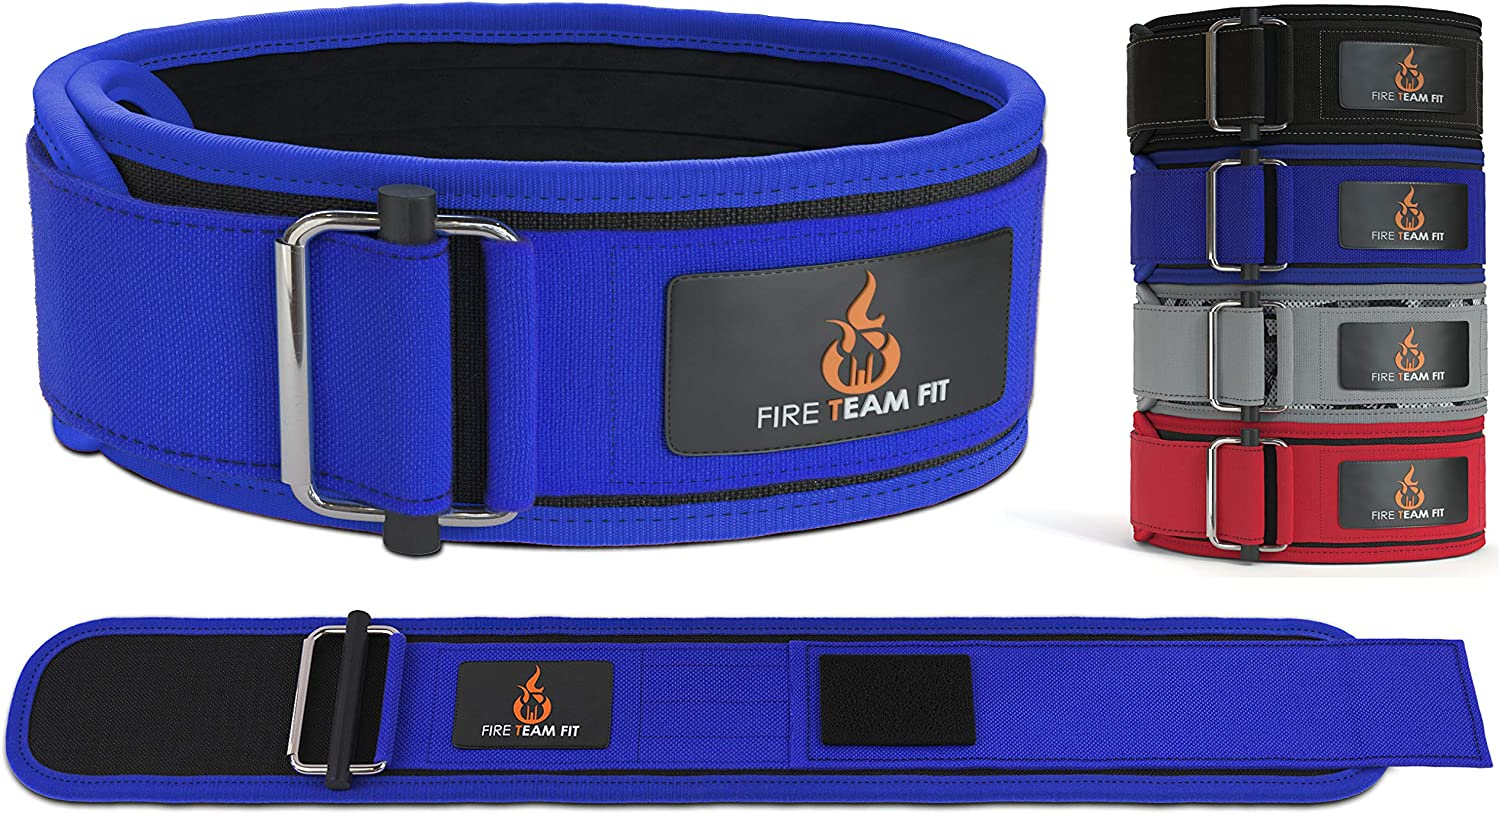 Fire Team Fit Weightlifting Belt For Men and Women 6 Inche Olympic Lifting